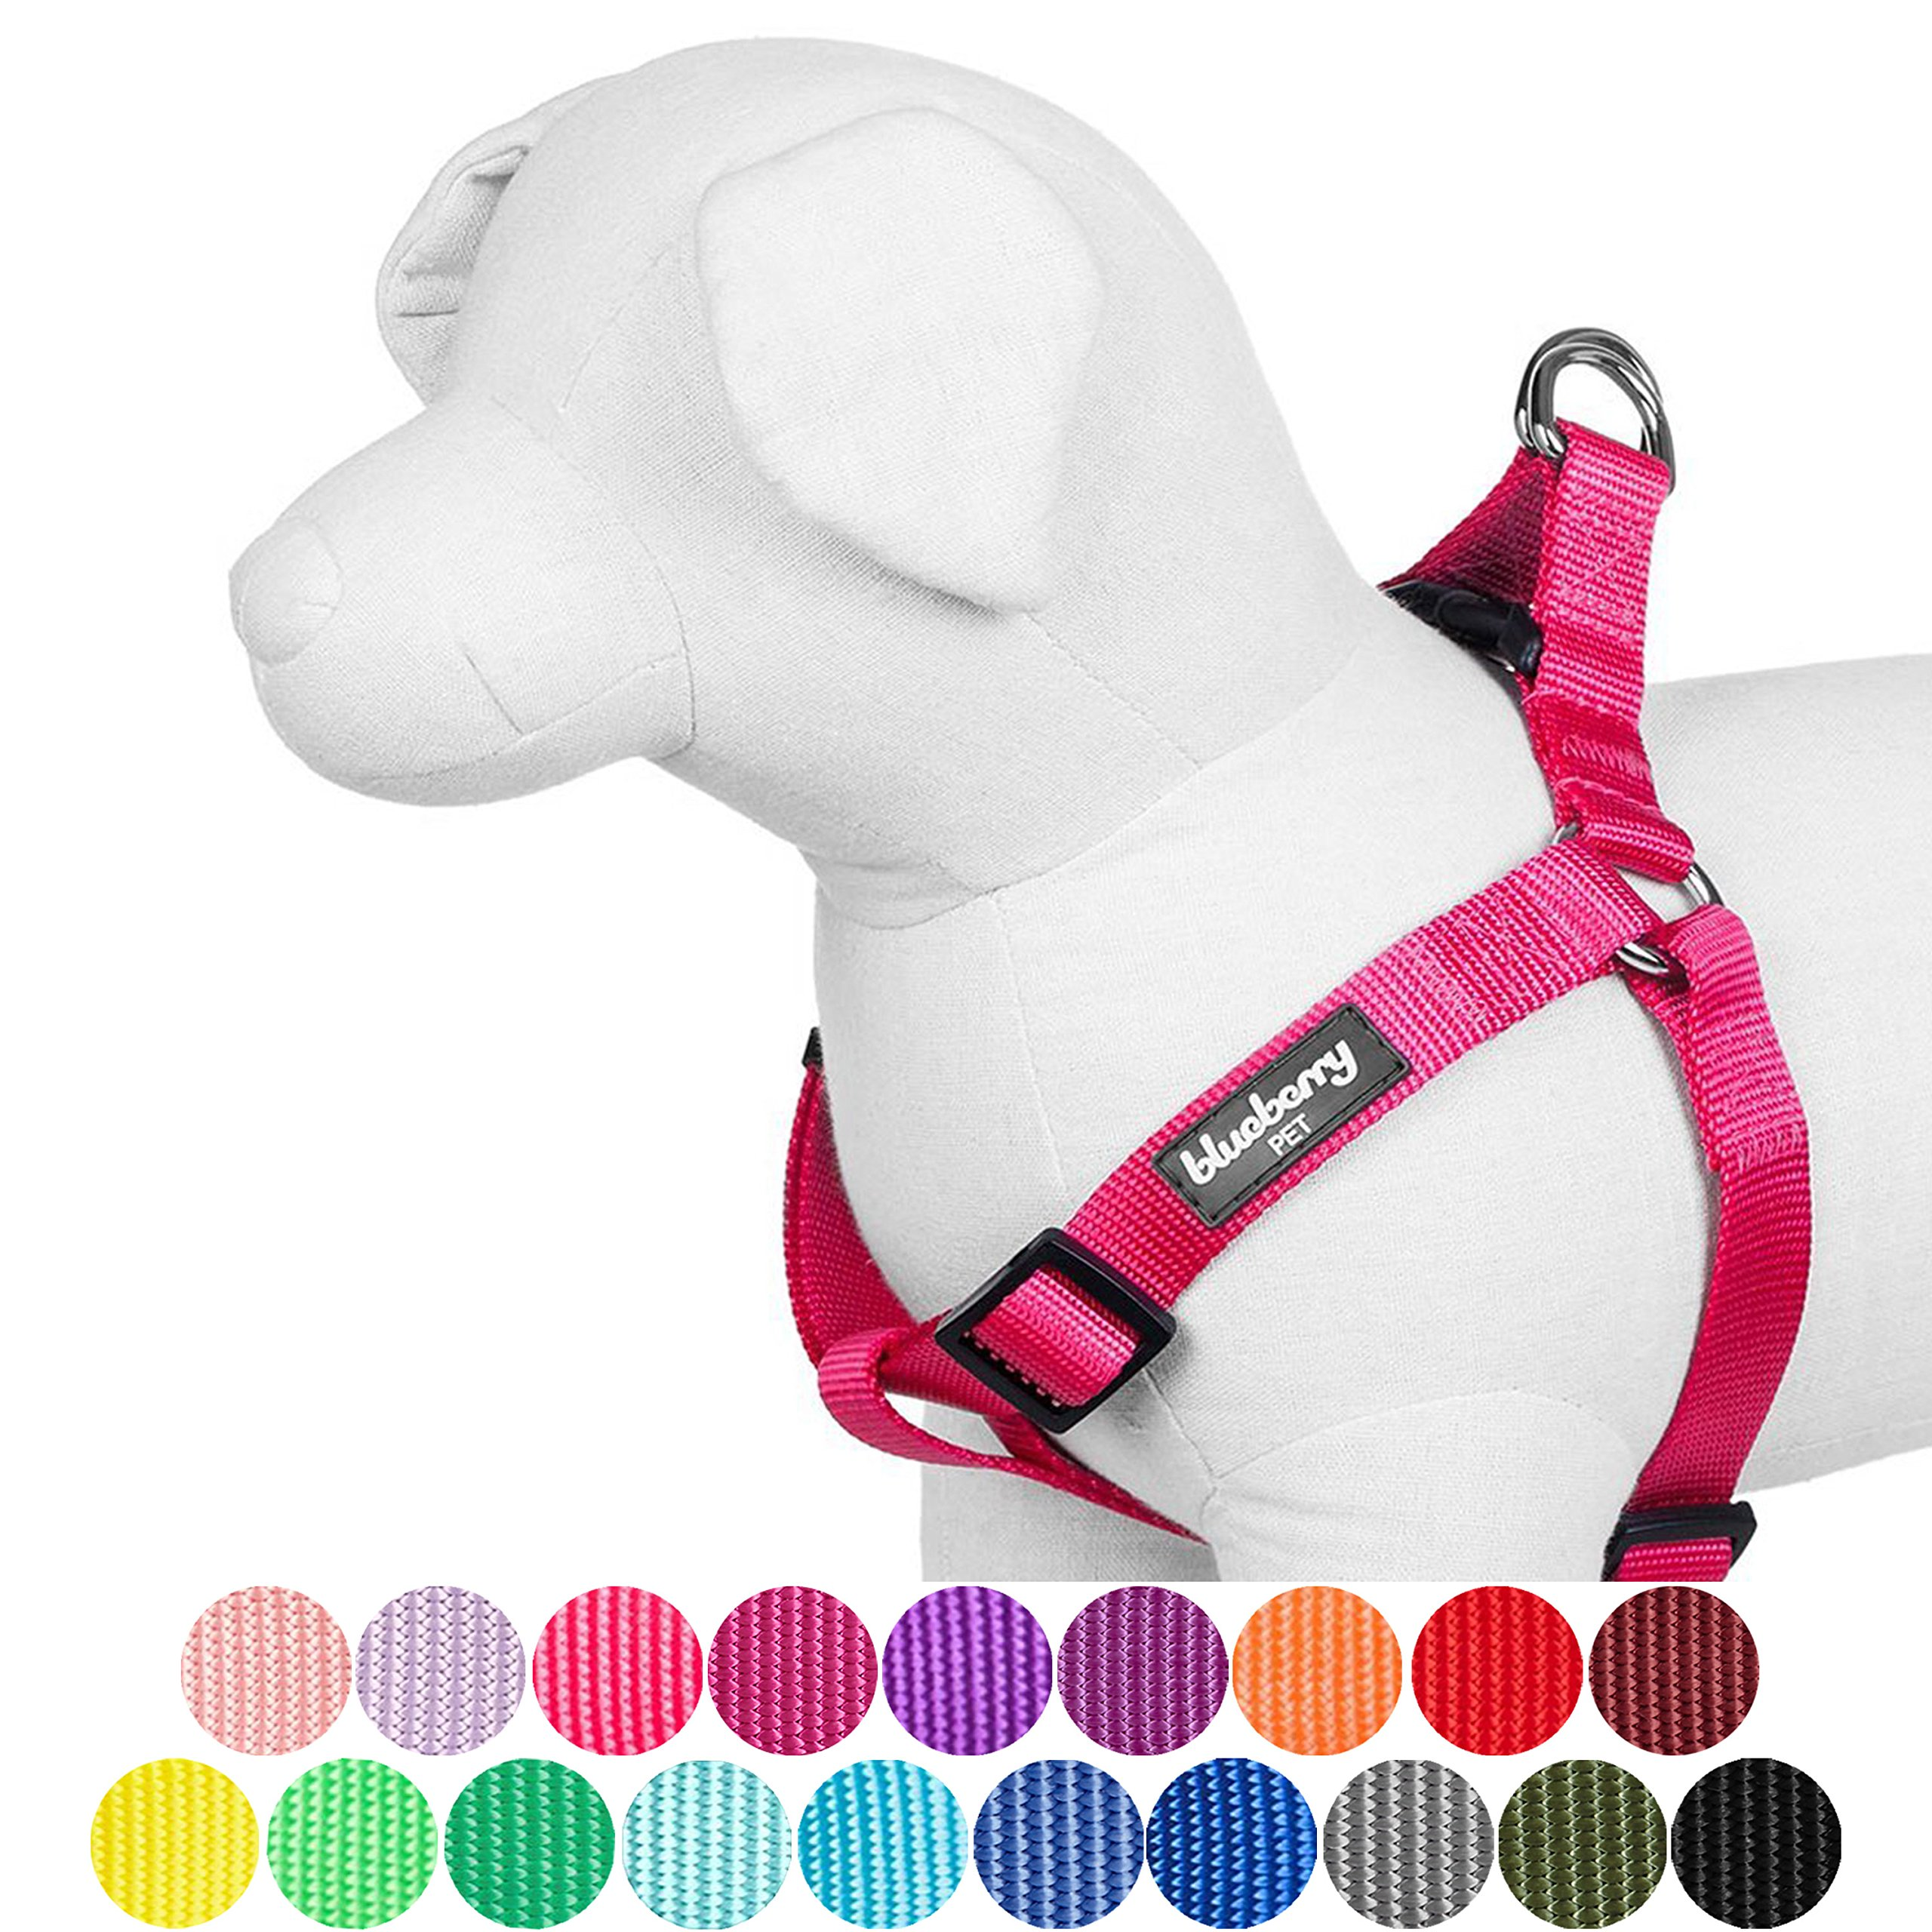 Blueberry Pet 19 Colors Step-in Classic Dog Harness, Chest Girth 26'' - 39'', French Pink, Large, Adjustable Harnesses for Dogs